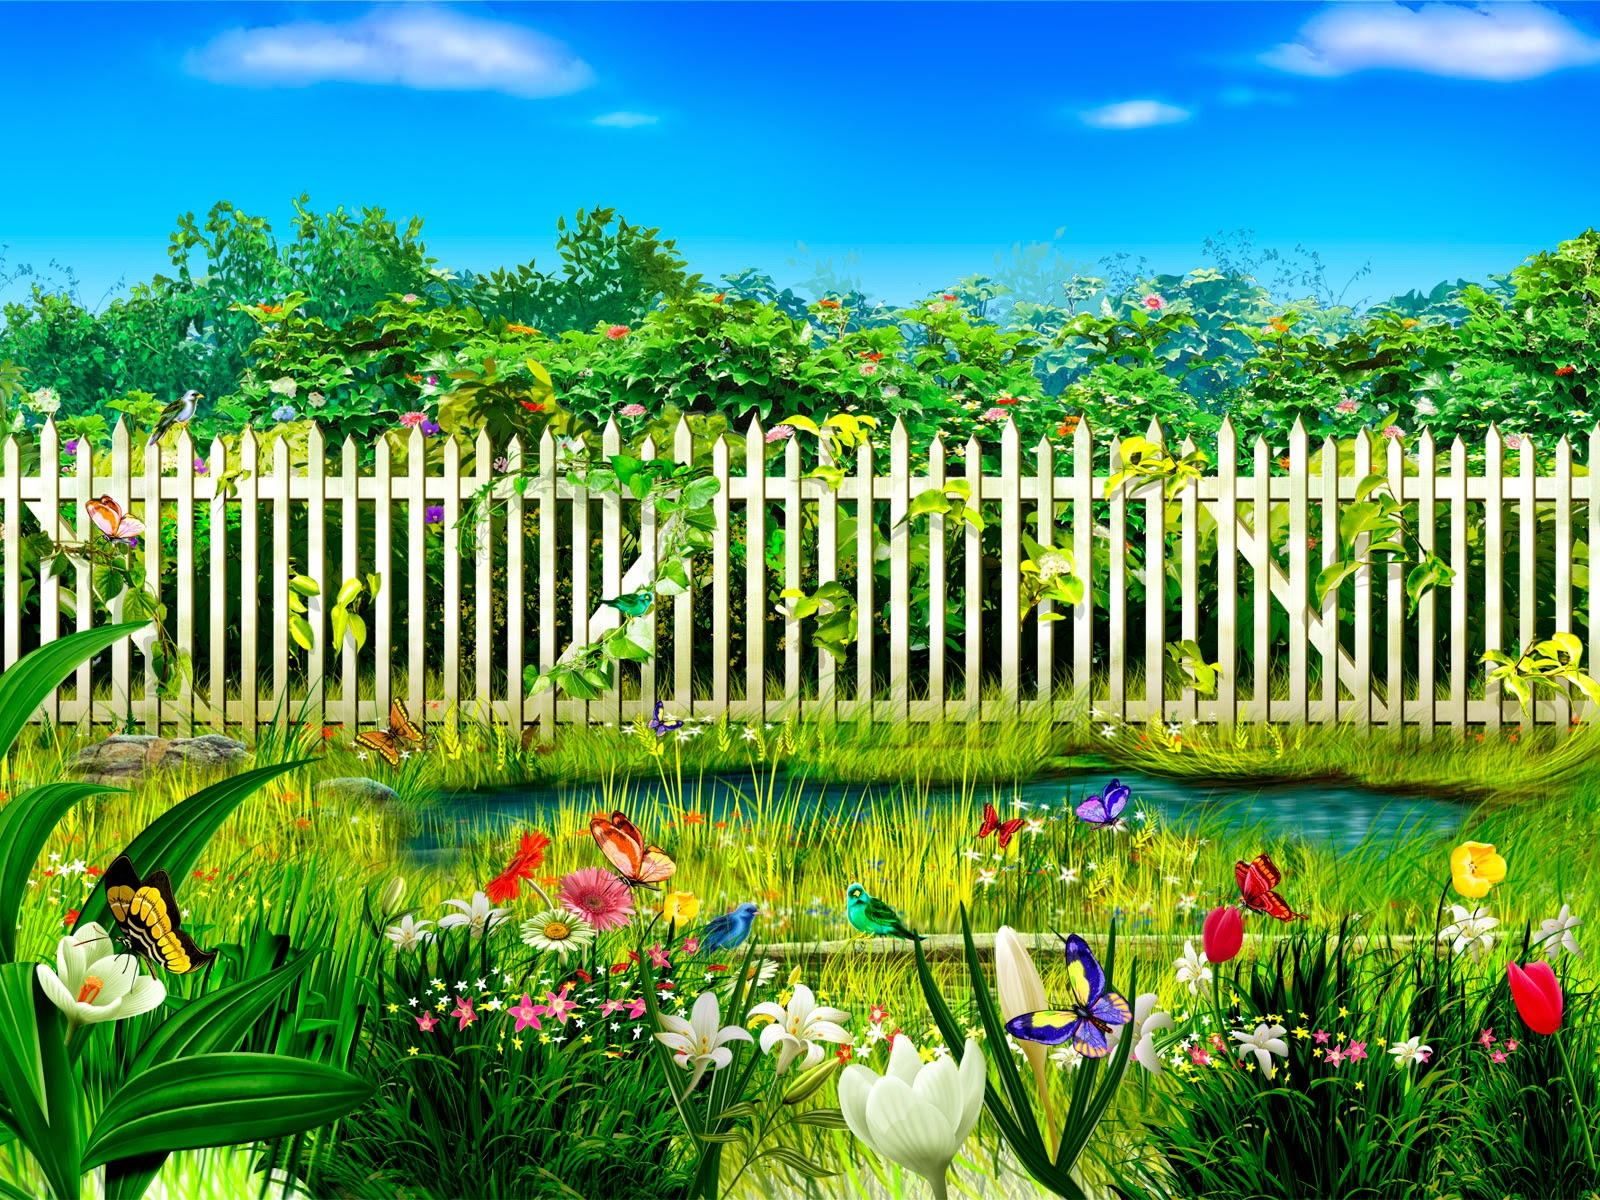 Marvelous Flower Garden Wallpaper Free Download